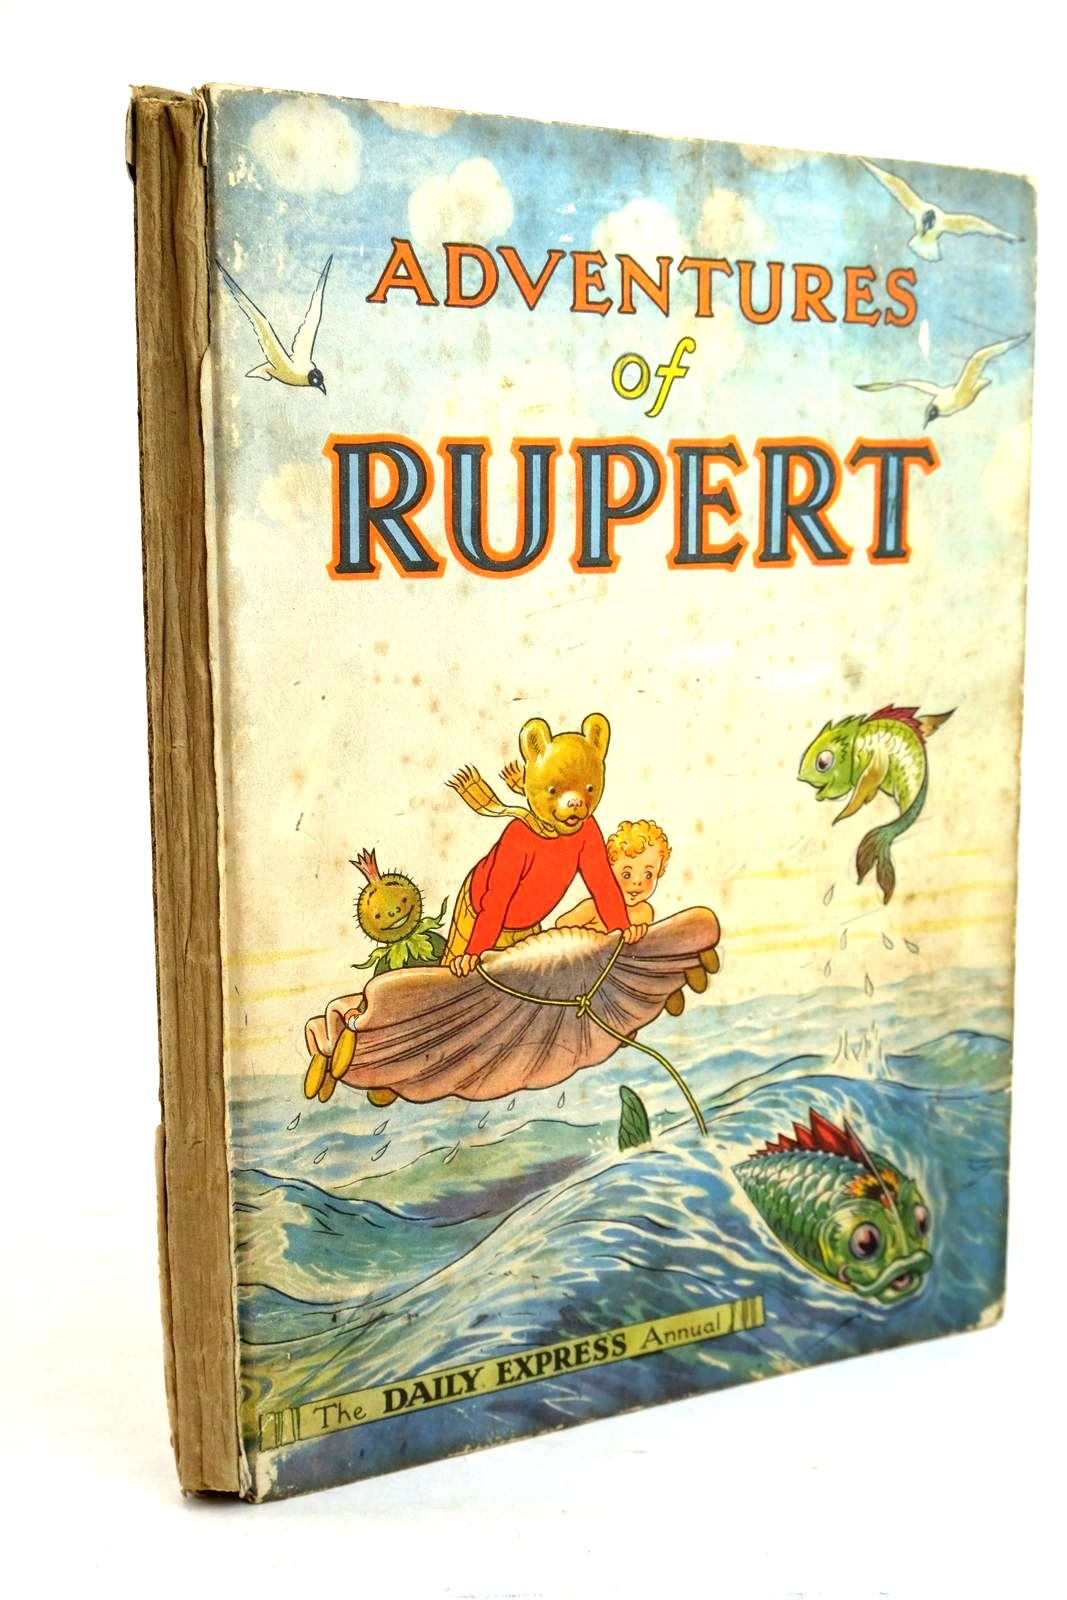 Photo of RUPERT ANNUAL 1950 - ADVENTURES OF RUPERT written by Bestall, Alfred illustrated by Bestall, Alfred published by Daily Express (STOCK CODE: 1320665)  for sale by Stella & Rose's Books